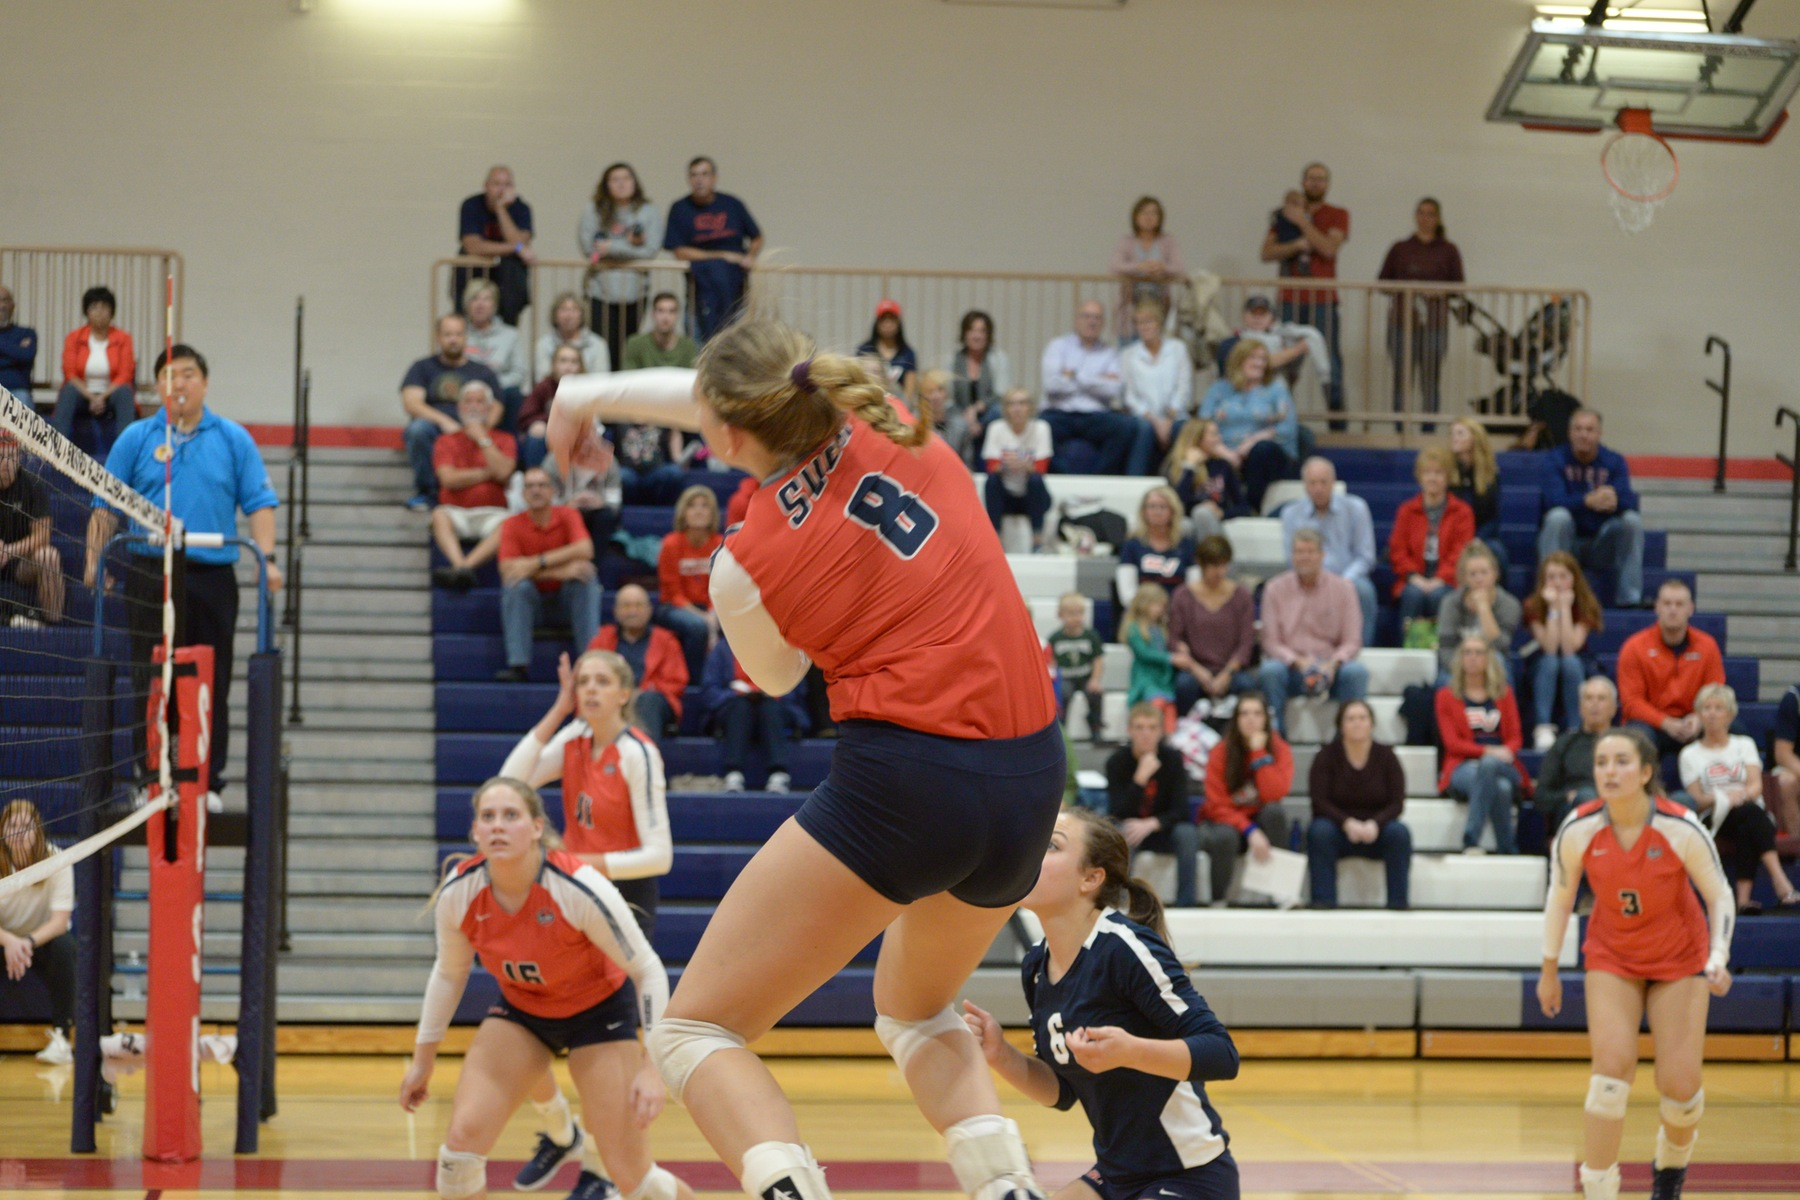 Tabit eclipses the 1,000 kill mark in 3-1 win over UIndy